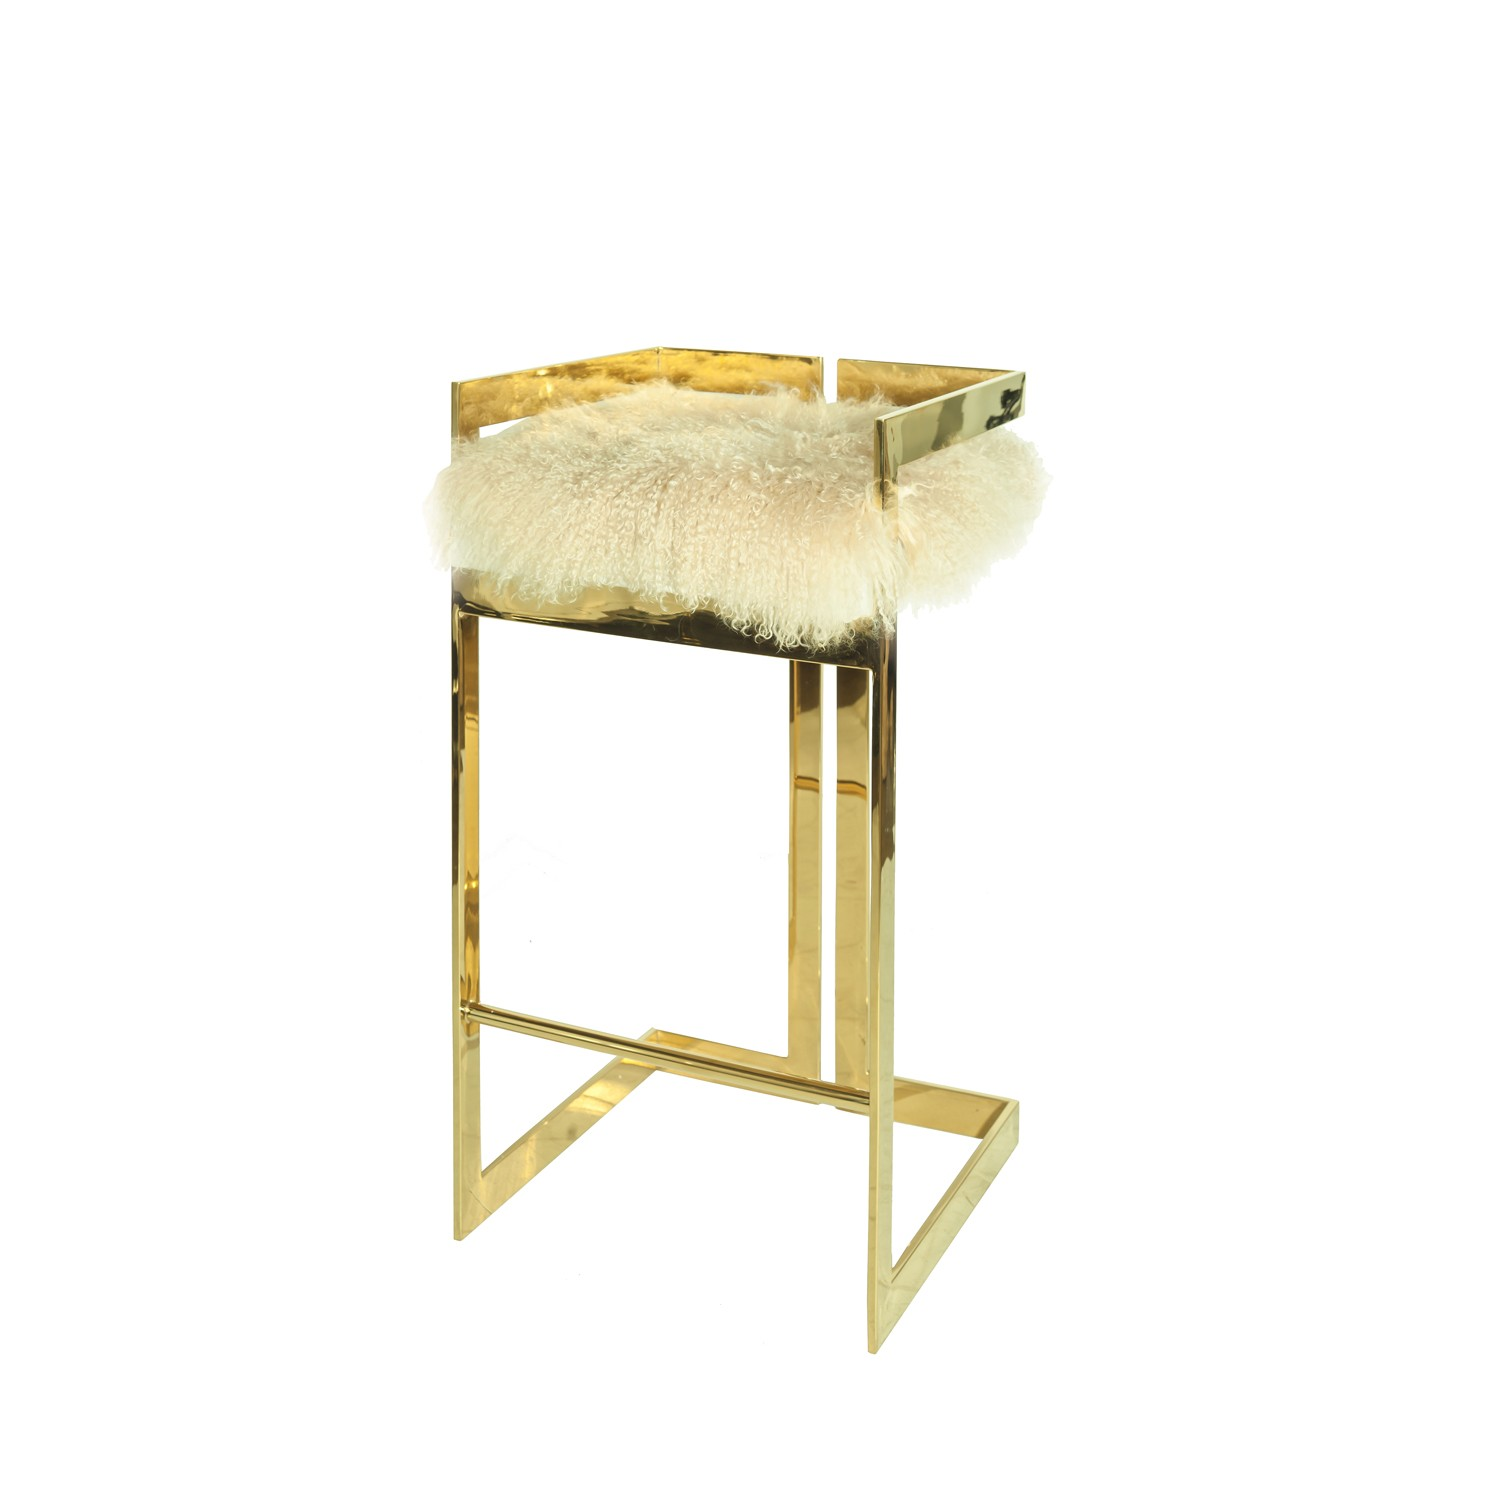 Wondrous Hearst Counter Stool With Mongolian Fur Seat Pabps2019 Chair Design Images Pabps2019Com